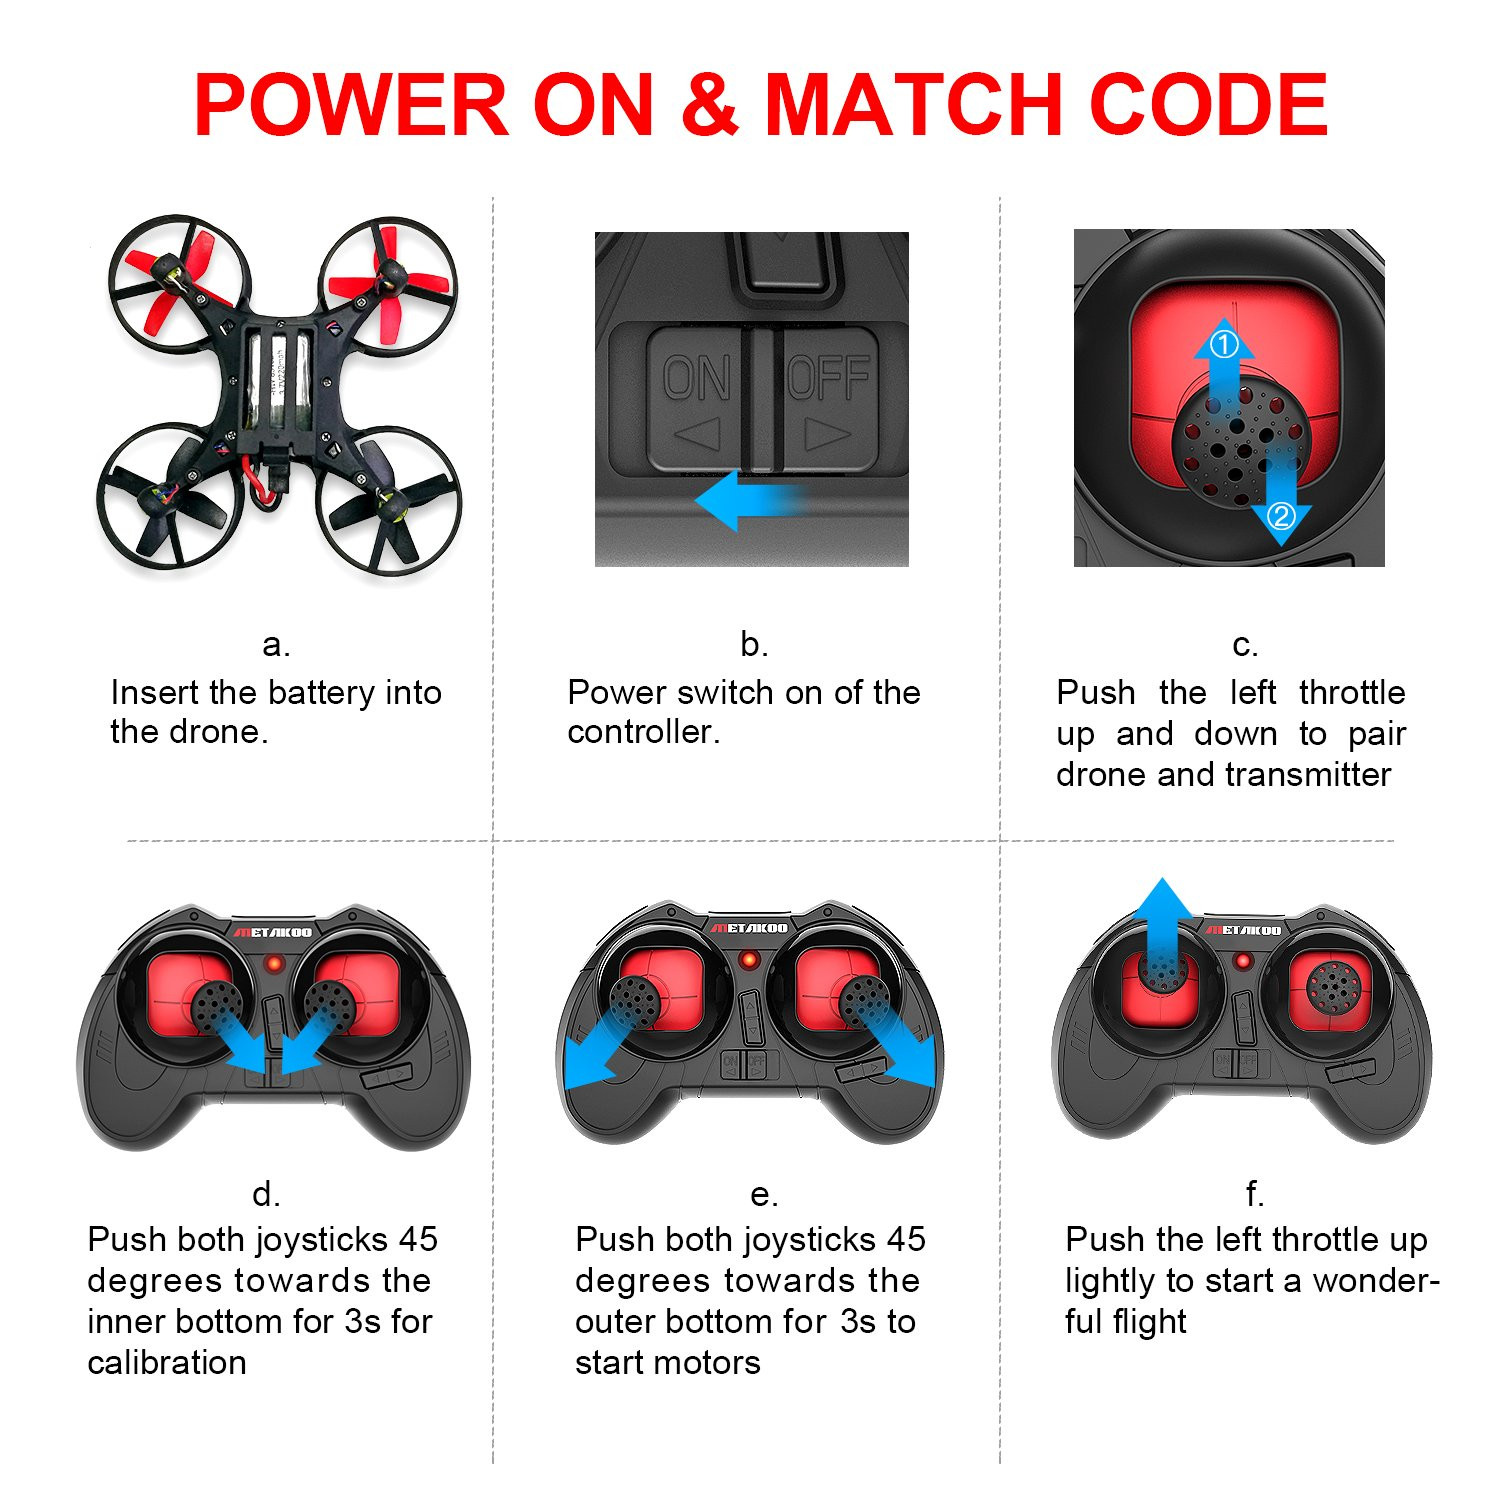 Drone, Metakoo M1 Mini Drone 2.4GHz 6-Axis Double Battery for Beginners and Kids Drone with 360°Full Protection, Altitude Hold, 3D Flips, Headless Mode, 3 Speed Modes Functions by METAKOO (Image #7)